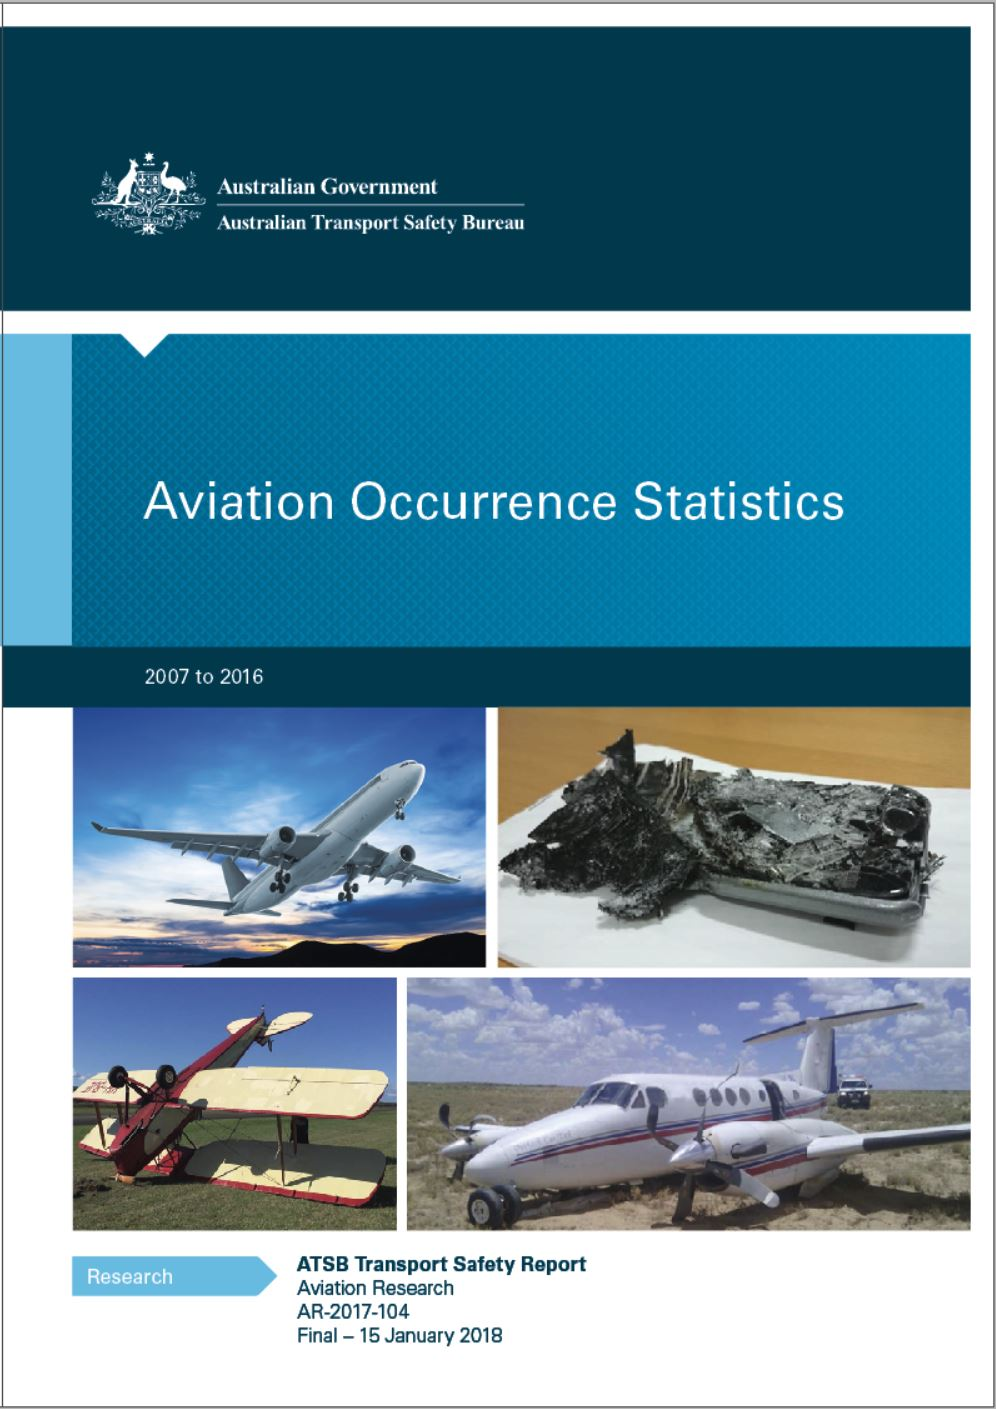 Download complete document - Aviation Occurrence Statistics report 2007 to 2016